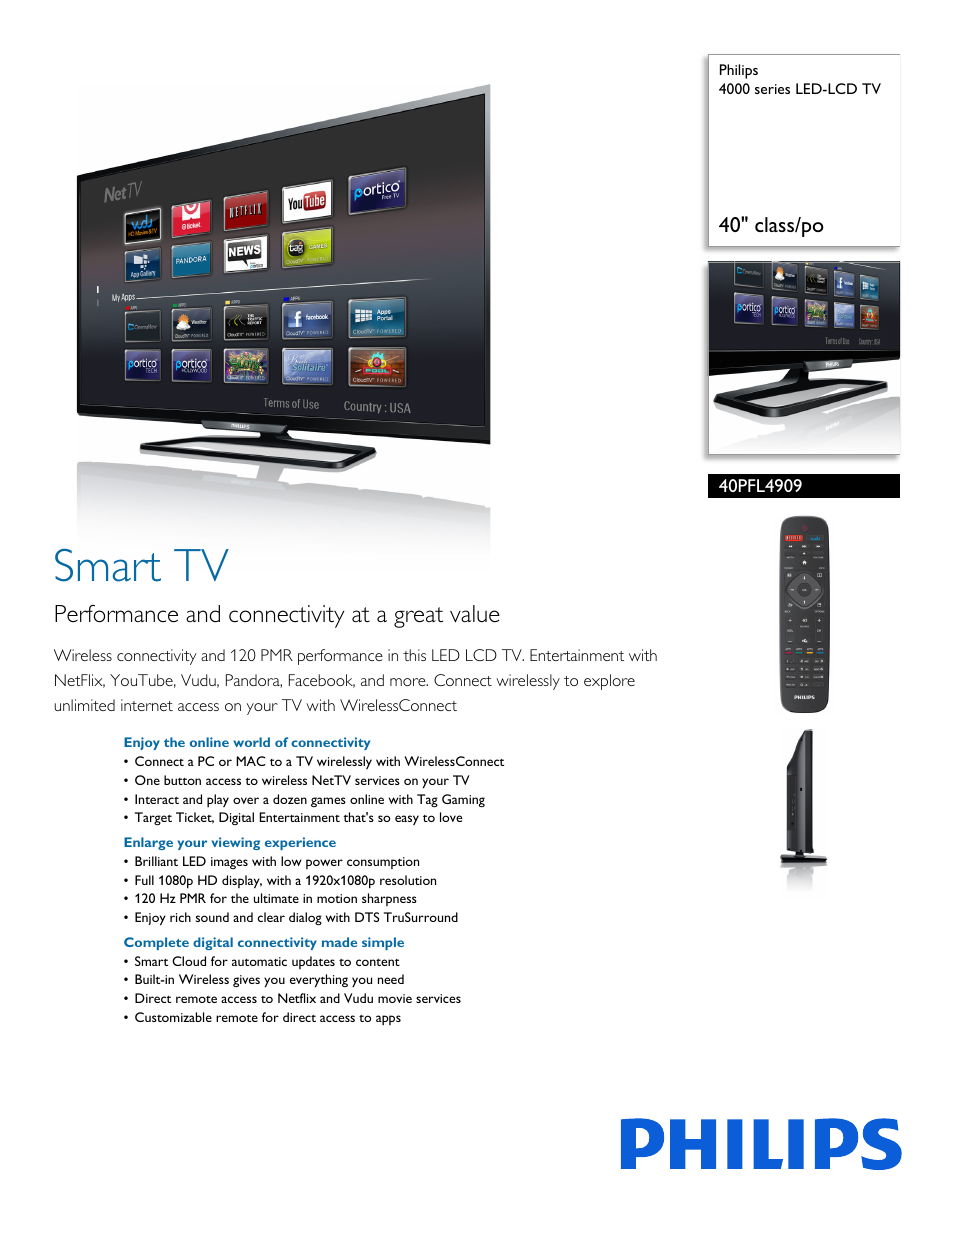 philips 4000 series led lcd tv 40pfl4909 40 quot class po user rh manualsdir com LED TV philips 42pfl7662d lcd tv manual